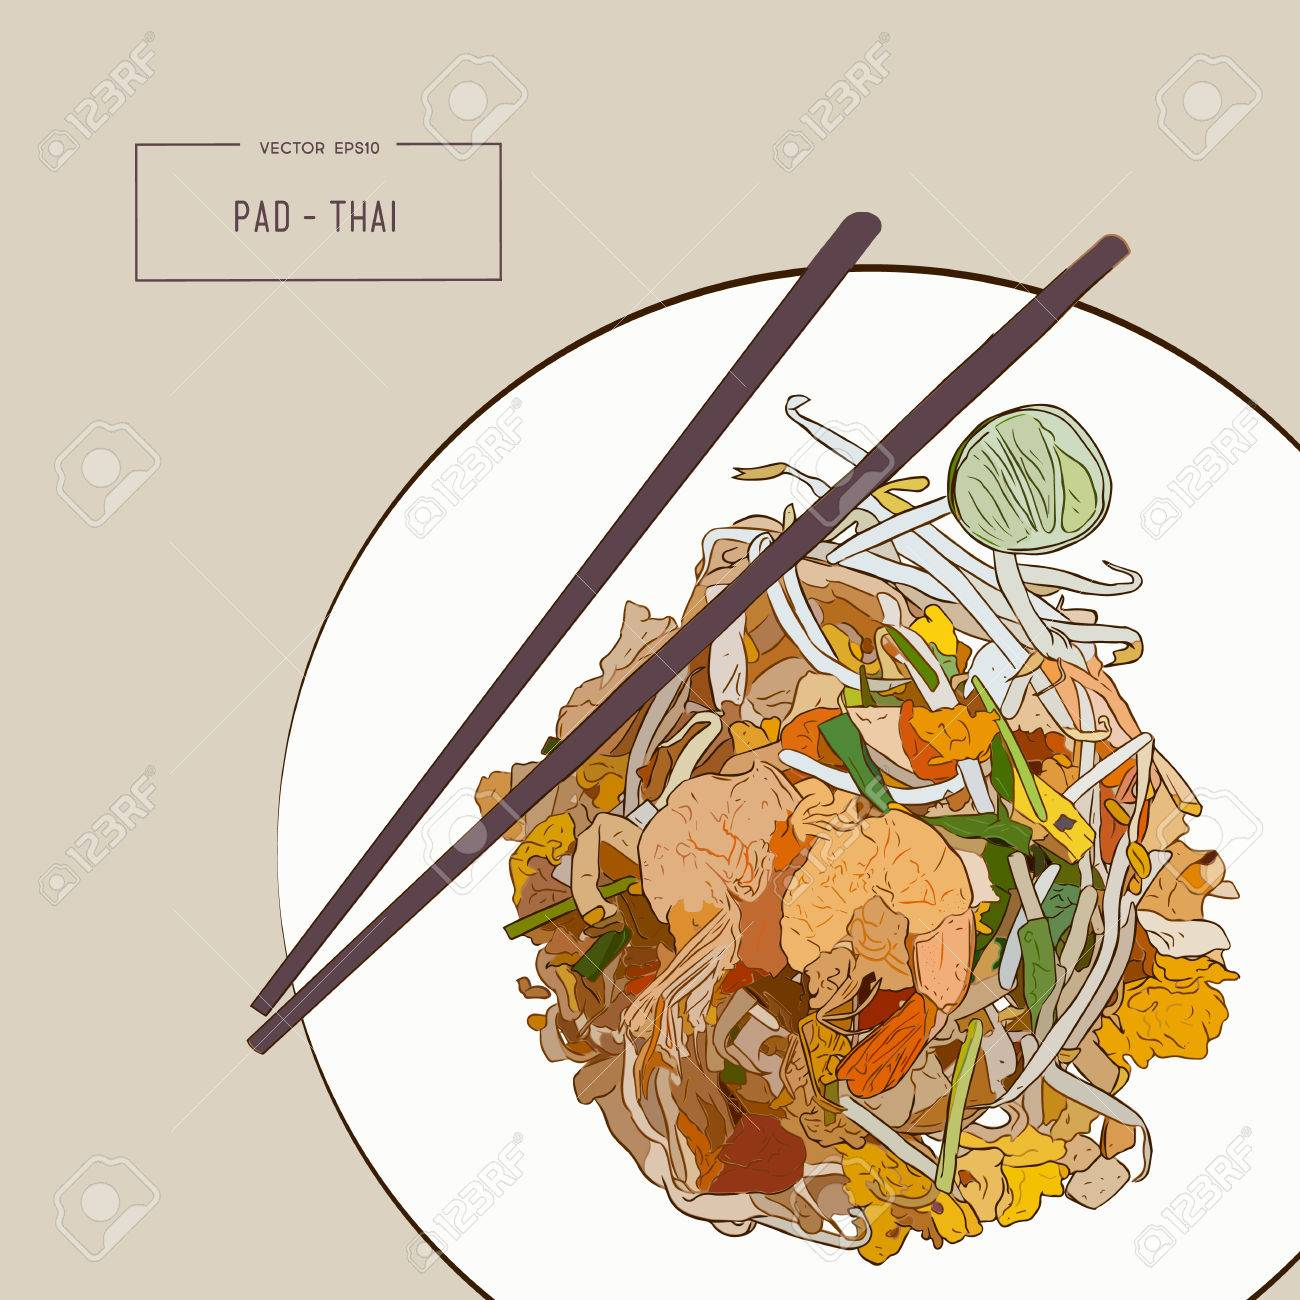 Pat Thai stir-fried rice noodle local Thailand food, hand draw sketch vector. - 83943272